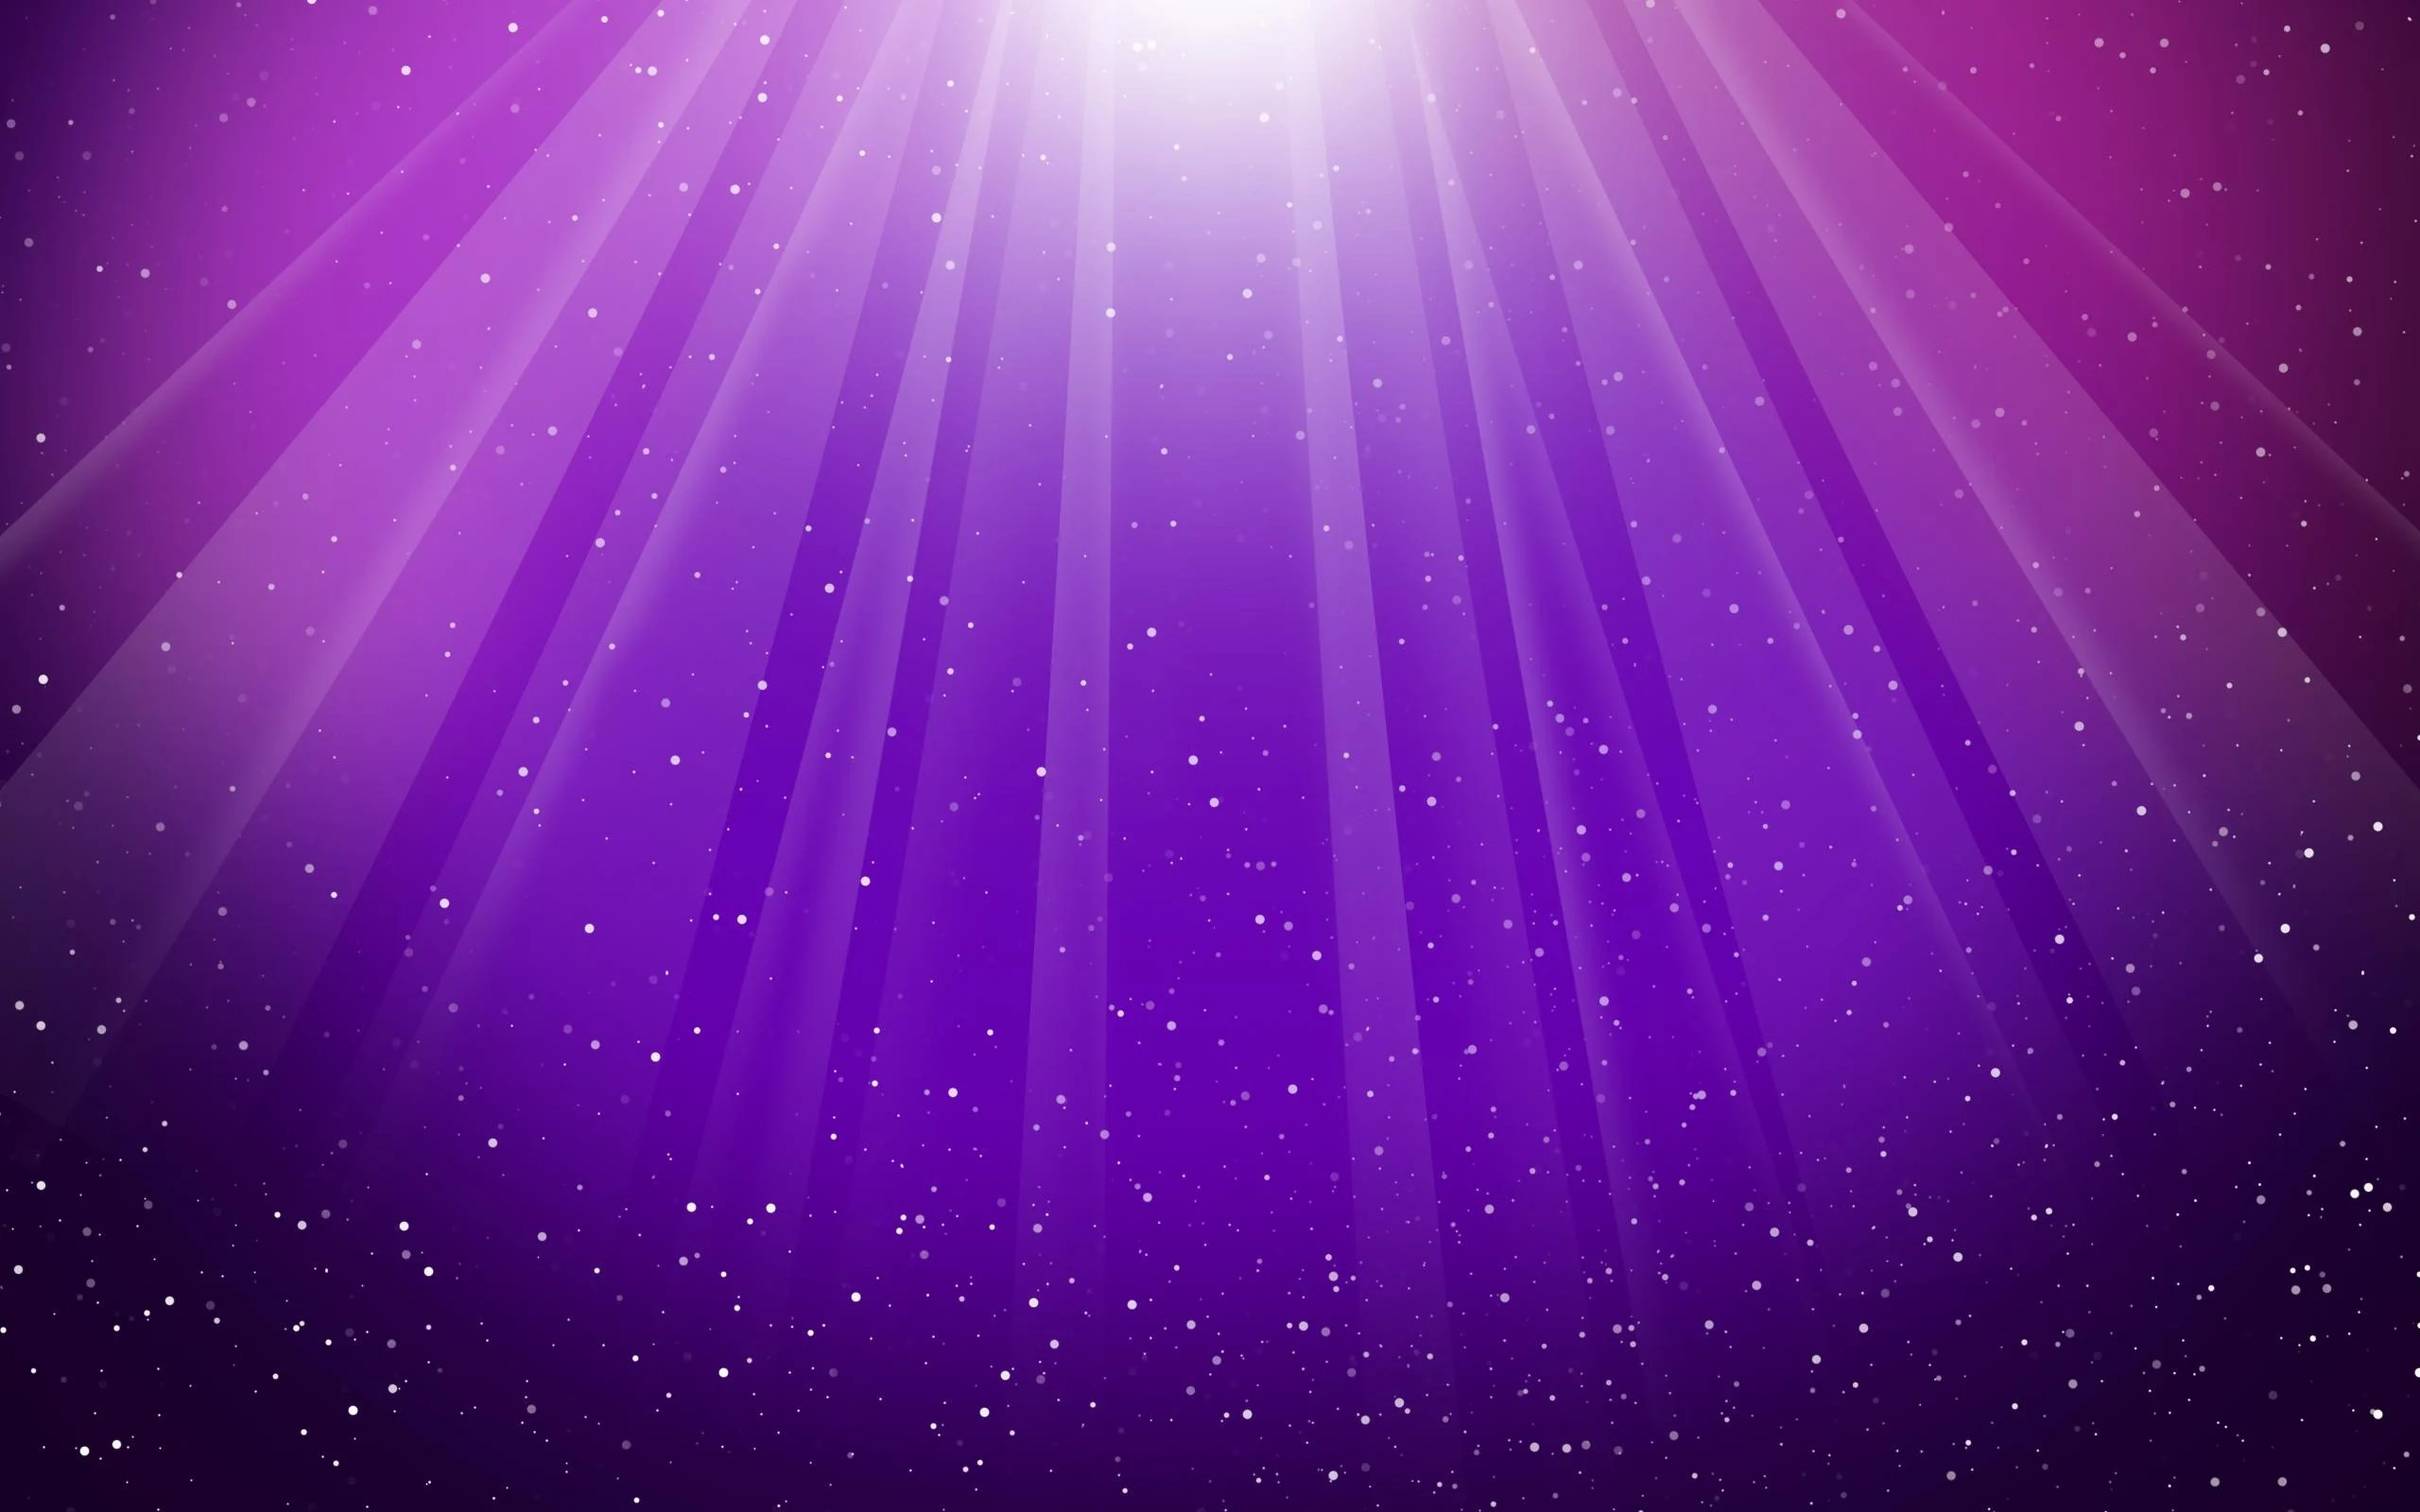 Purple Wallpapers Free   Wallpaper Cave 39 High Definition Purple Wallpaper Images for Free Download